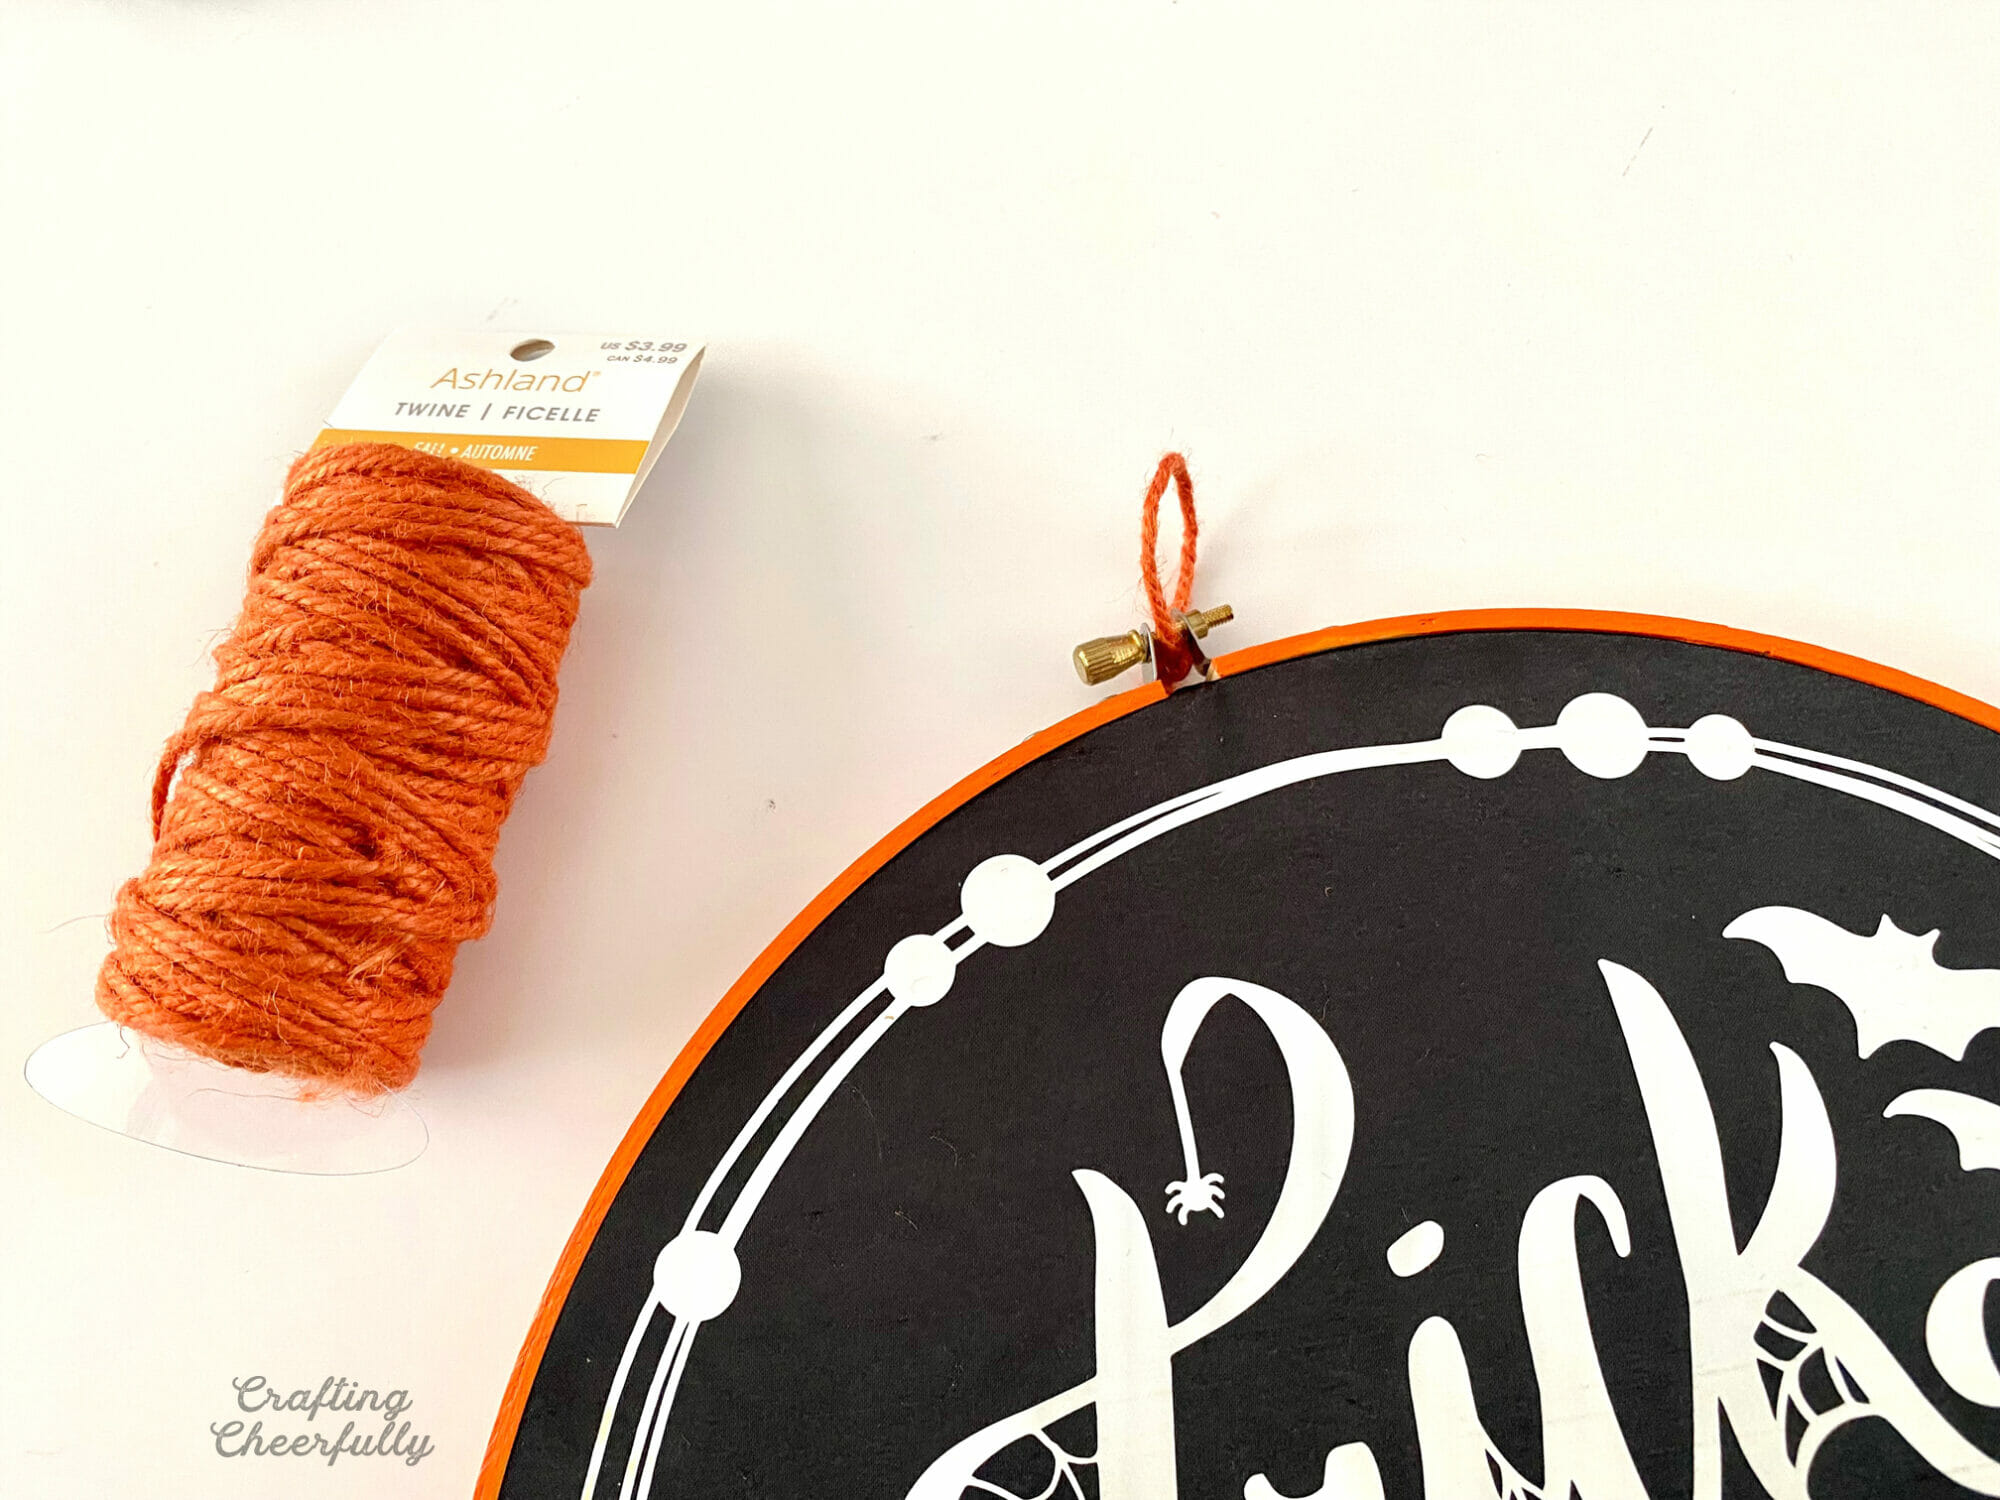 A loop of orange twine is added to the top of the embroidery hoop.